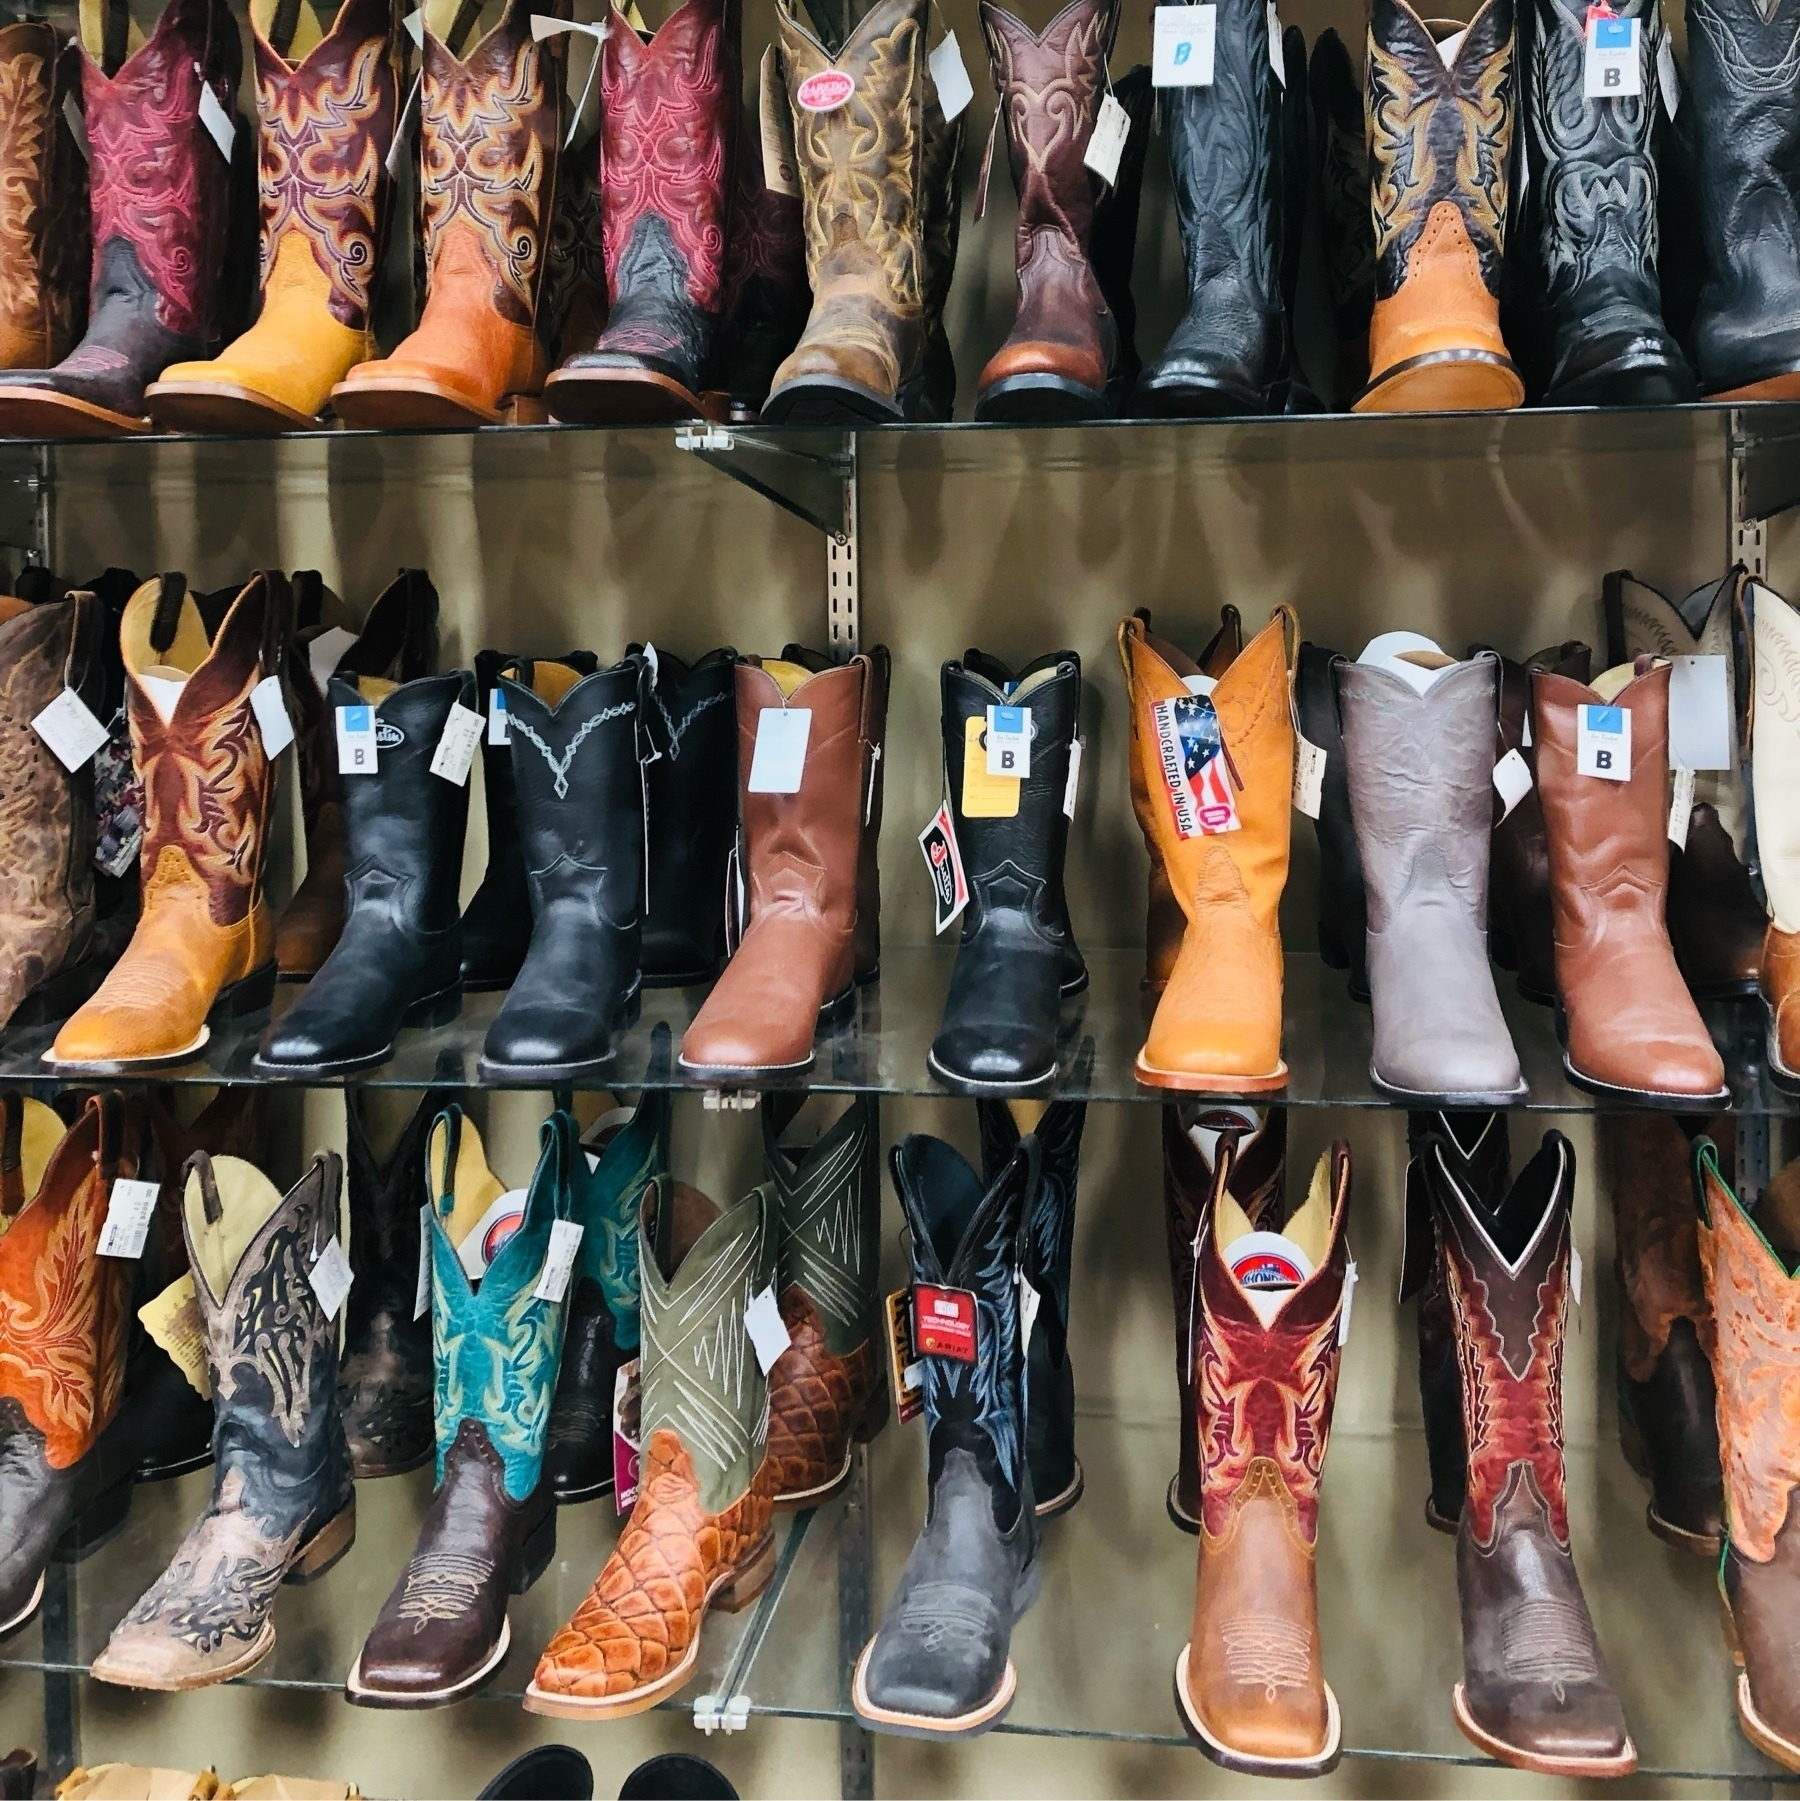 A wall rack full of colorful western boots. So many colors and varieties!